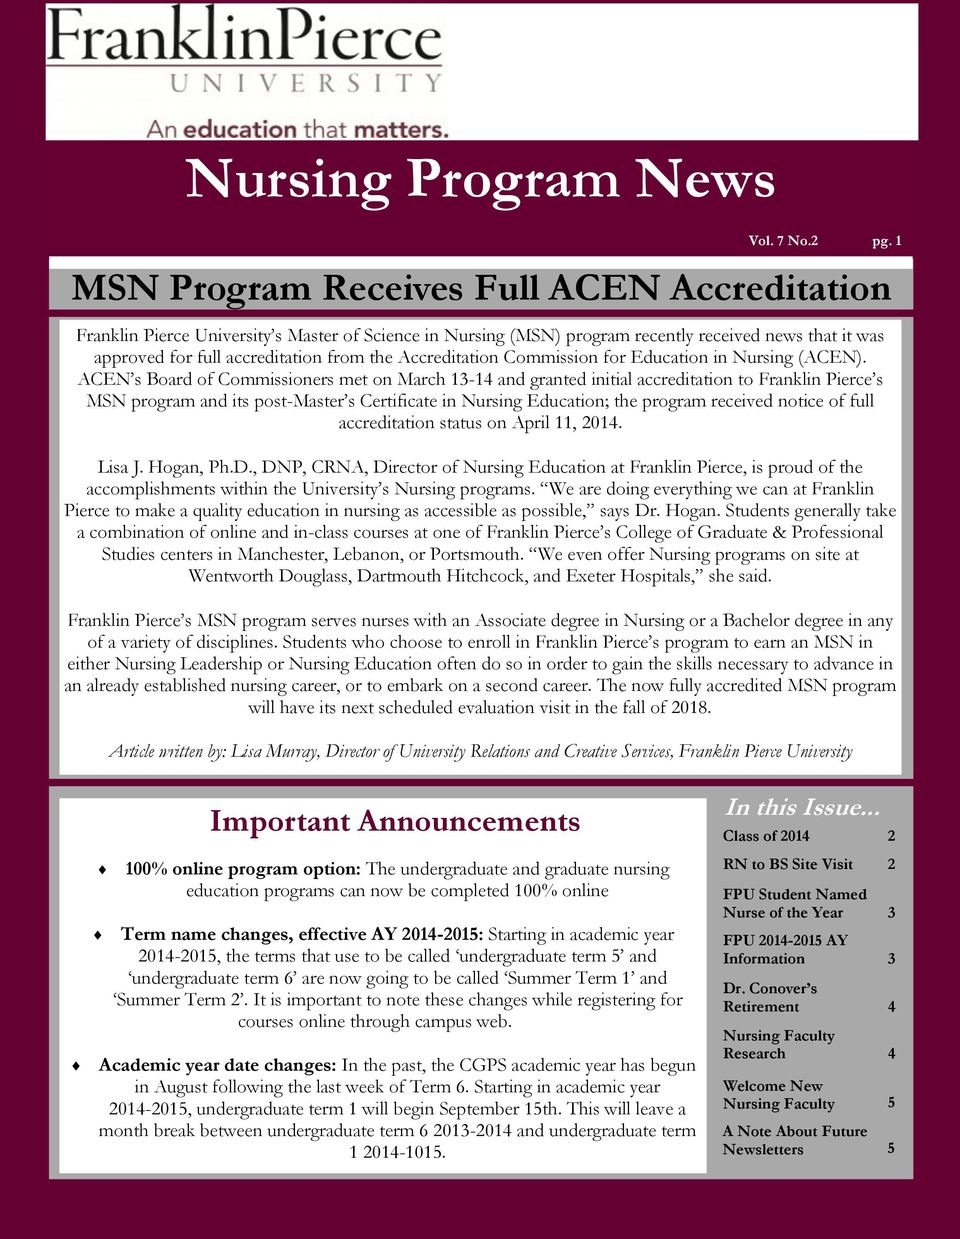 Accreditation Commission for Education in Nursing (ACEN).